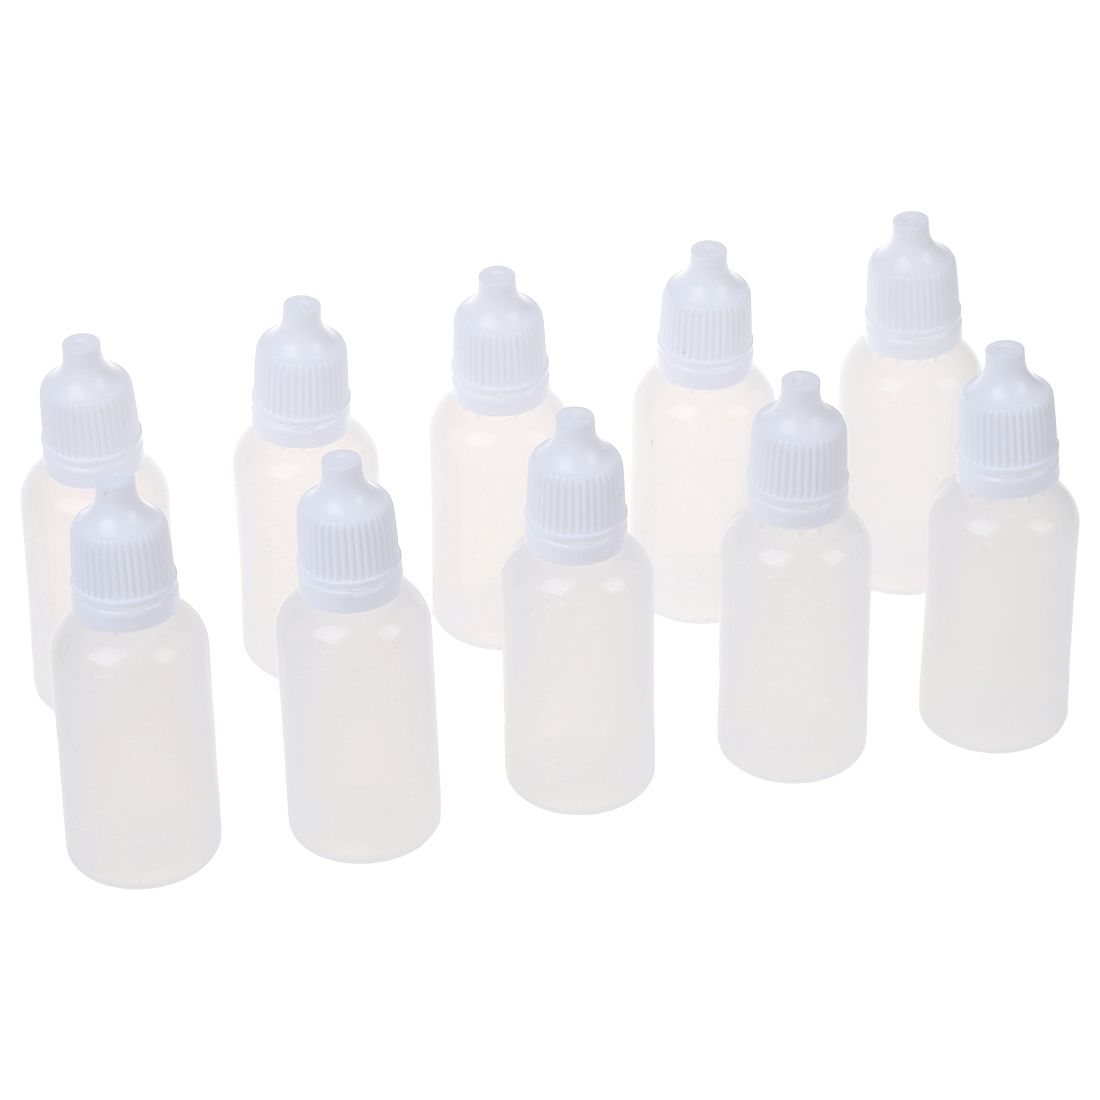 JEYL 10 pcs Plastic Bottle Drop Bottle 20ml ceeture 20ml